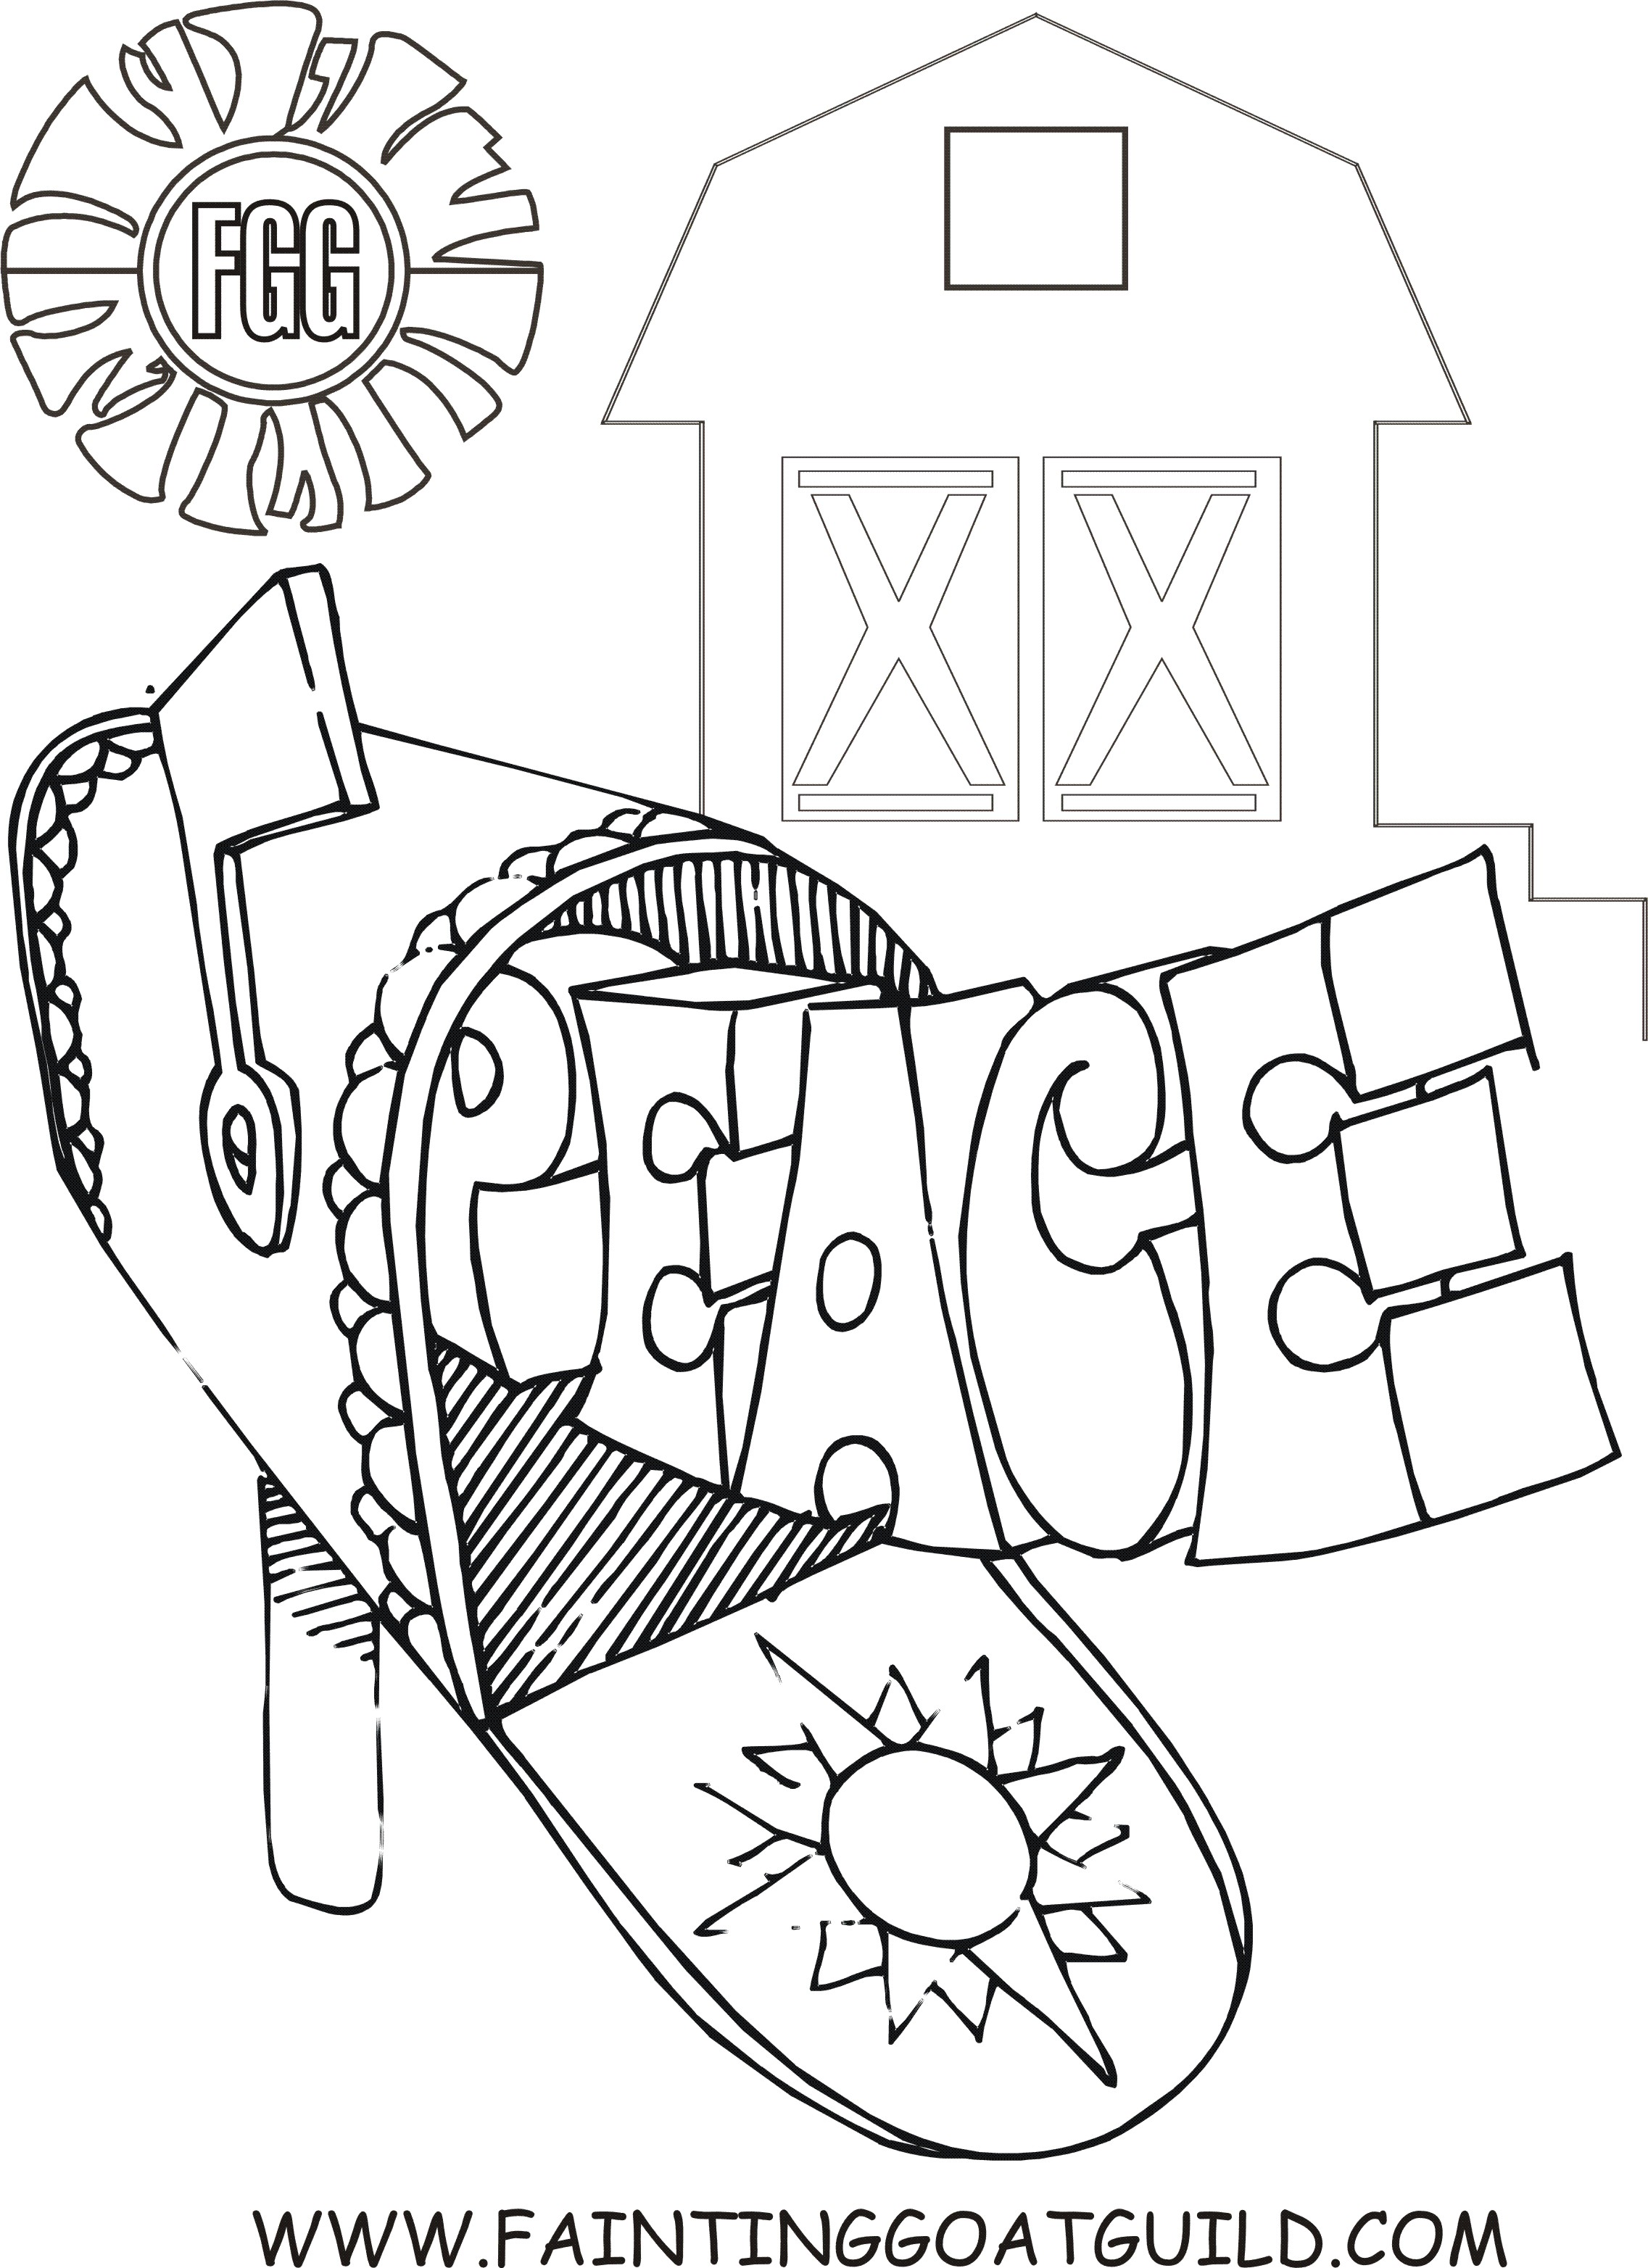 Brer Rabbit Coloring Pages Coloring Pages